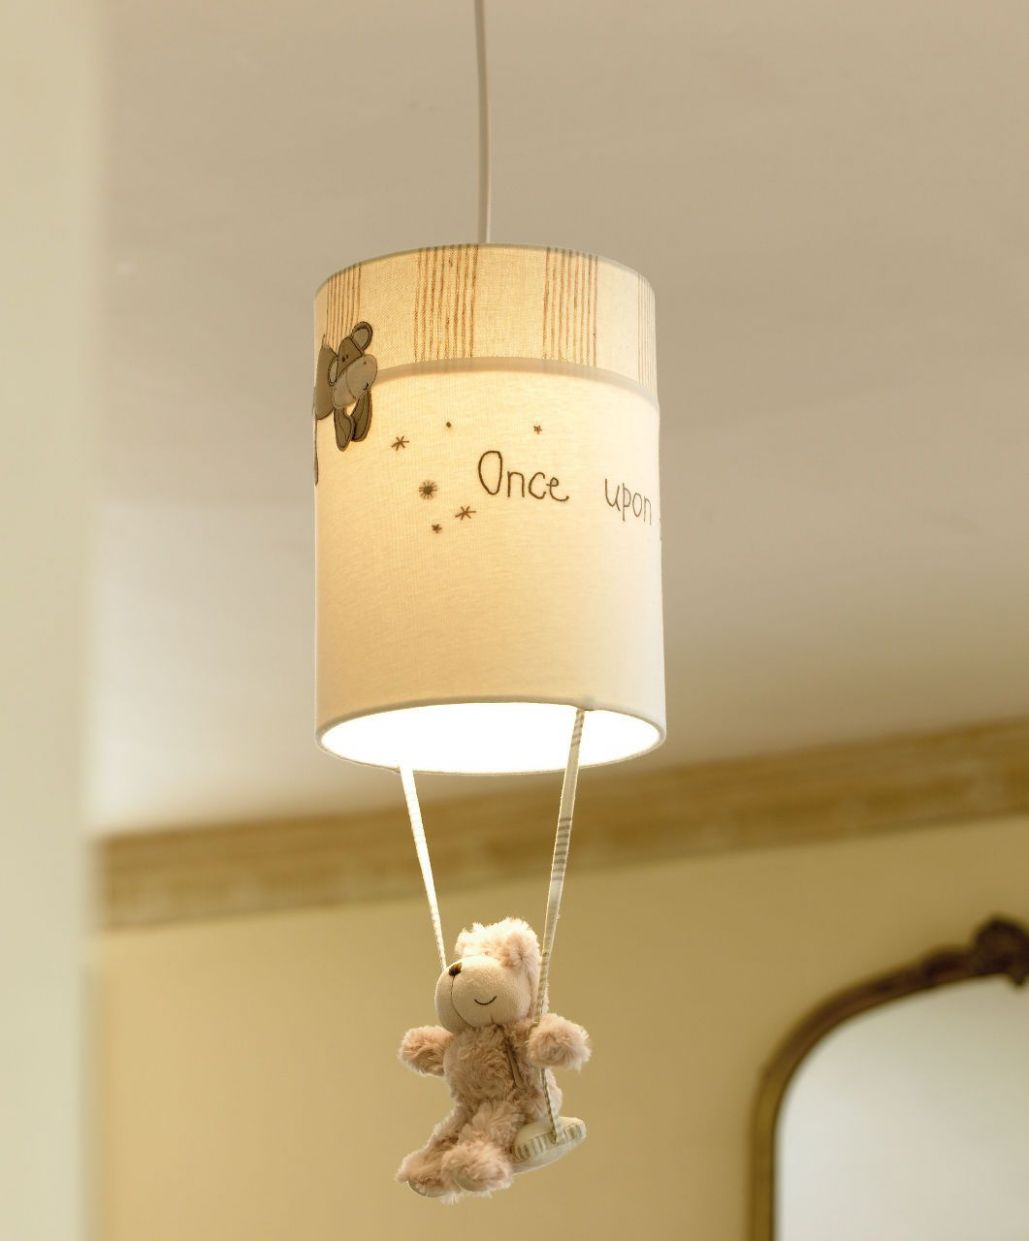 Once Upon a Time - Lampshade - Once Upon A Time Boys - Mamas ..